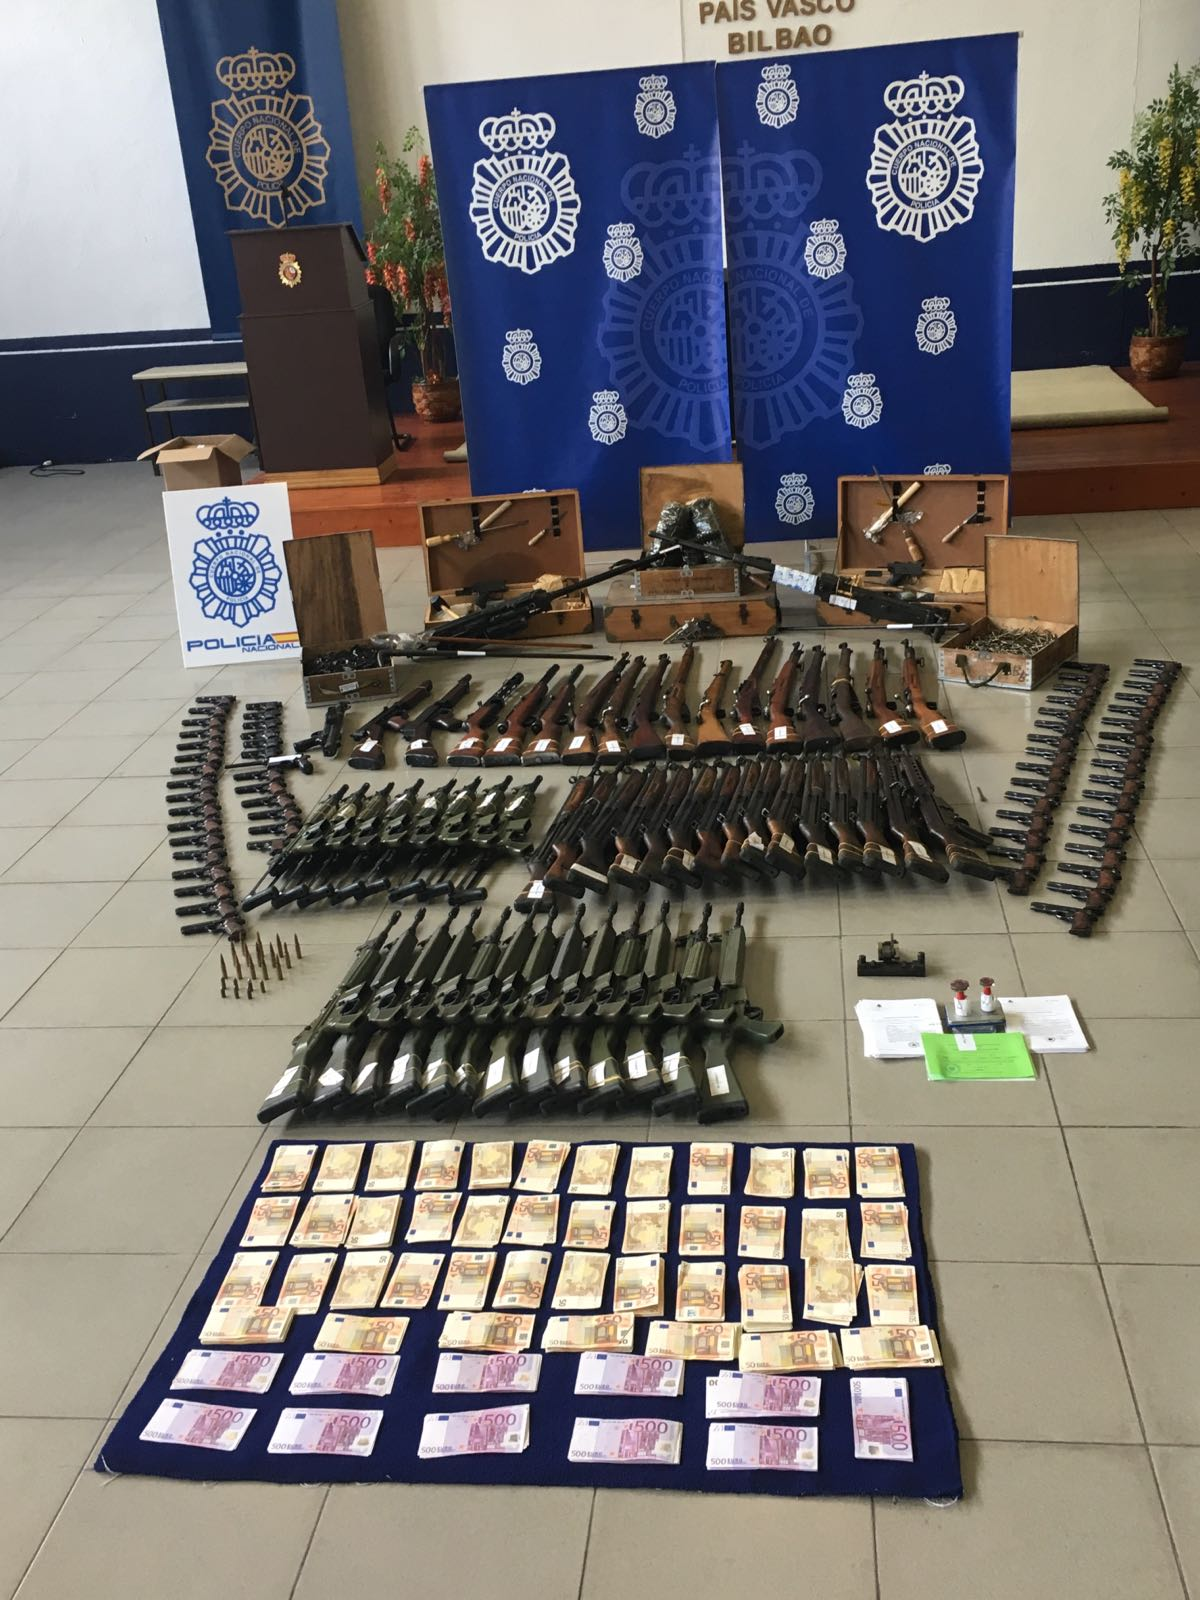 10 000 firearms seized in Spain with support of Europol ...